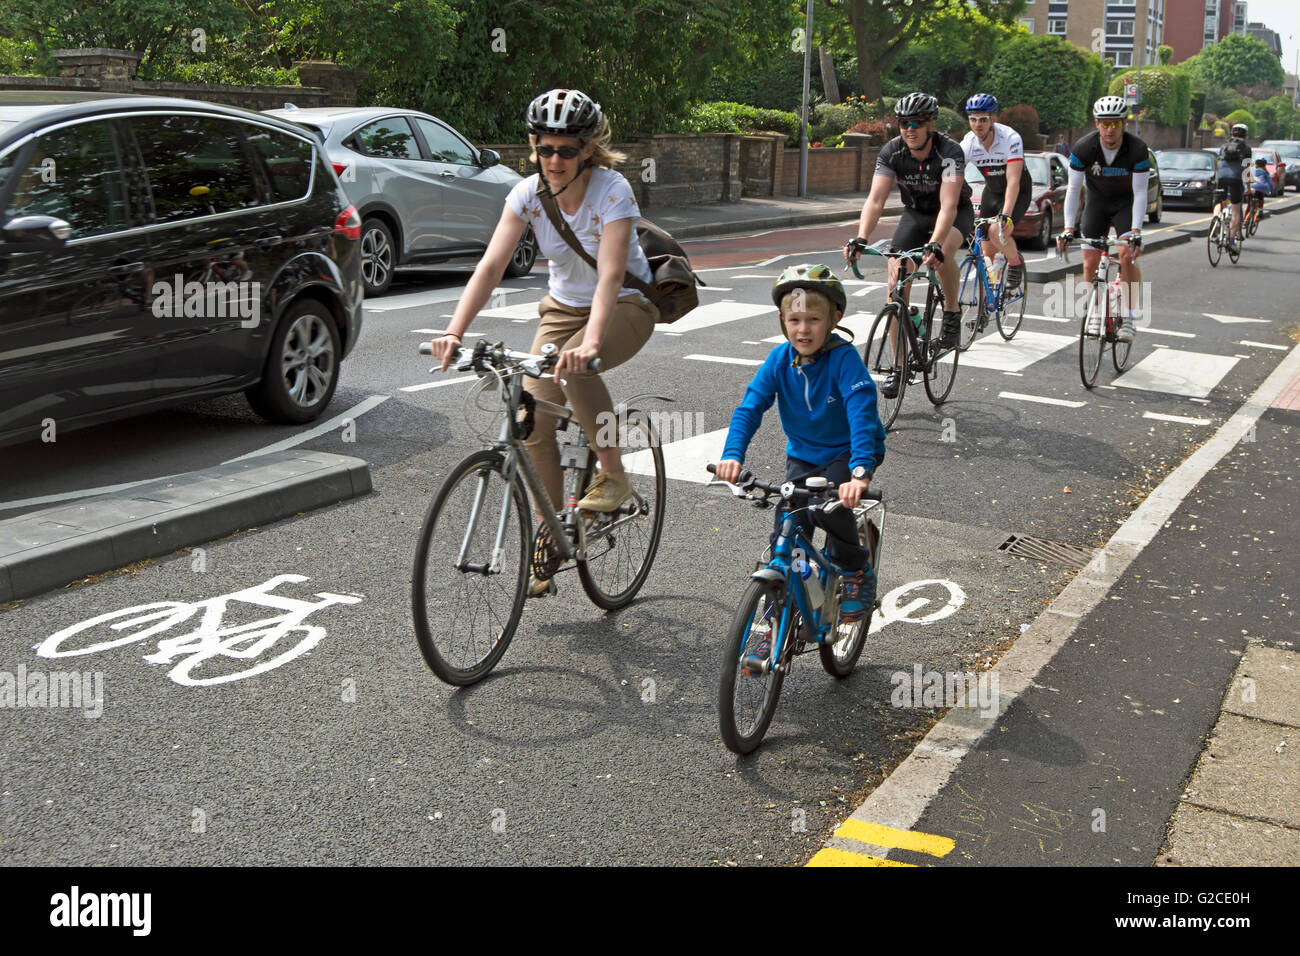 cyclists using a segregated  two-way cycle lane in kingston upon thames, surrey, england - Stock Image